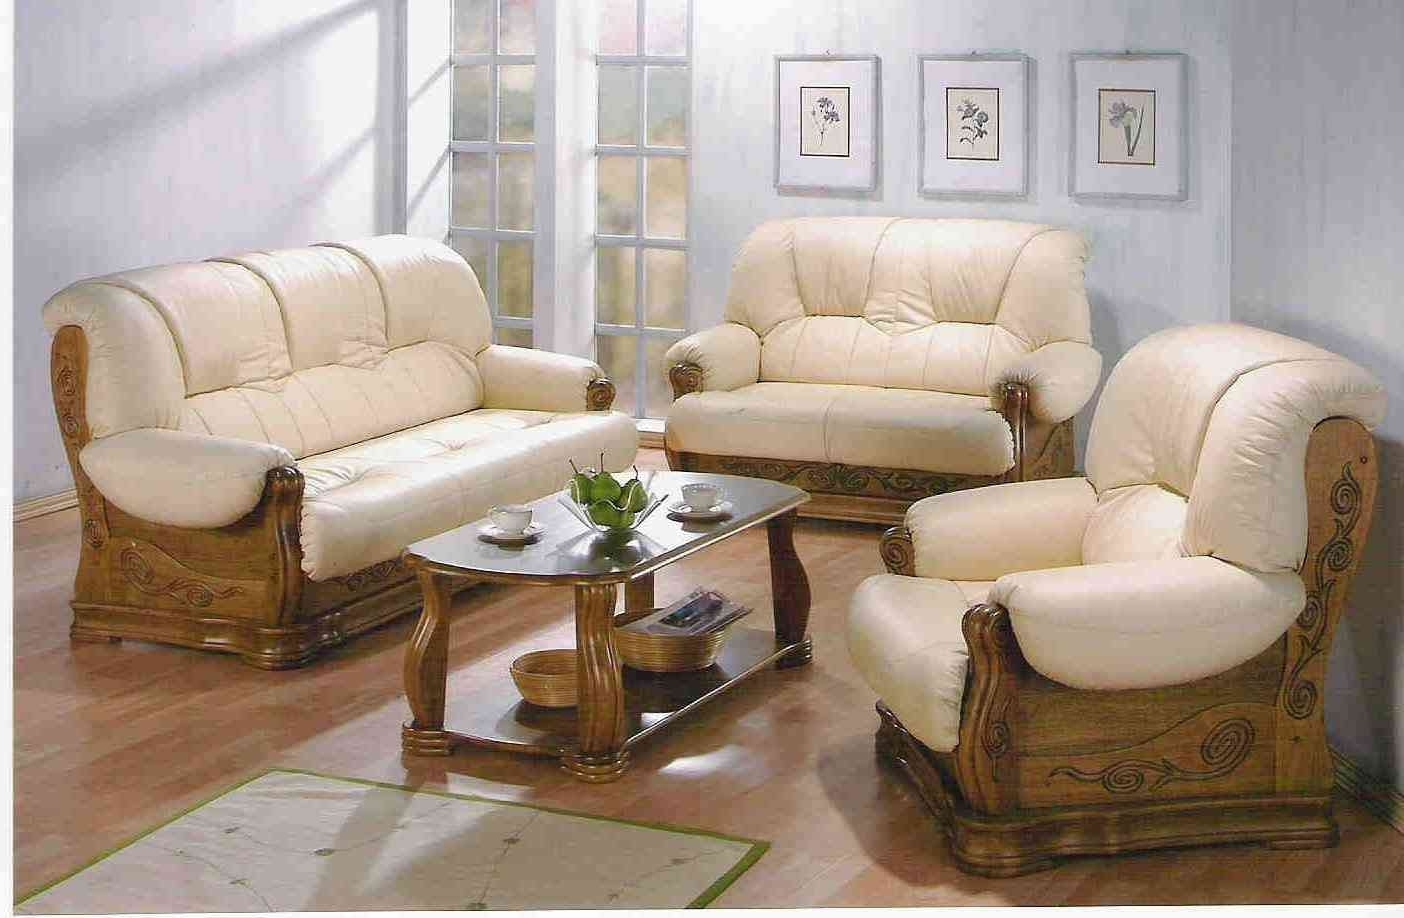 Trendy Traditional Sofas And Chairs Intended For Chairs : Traditional Wooden Sofa Set Designs Couch Traditional (View 12 of 15)